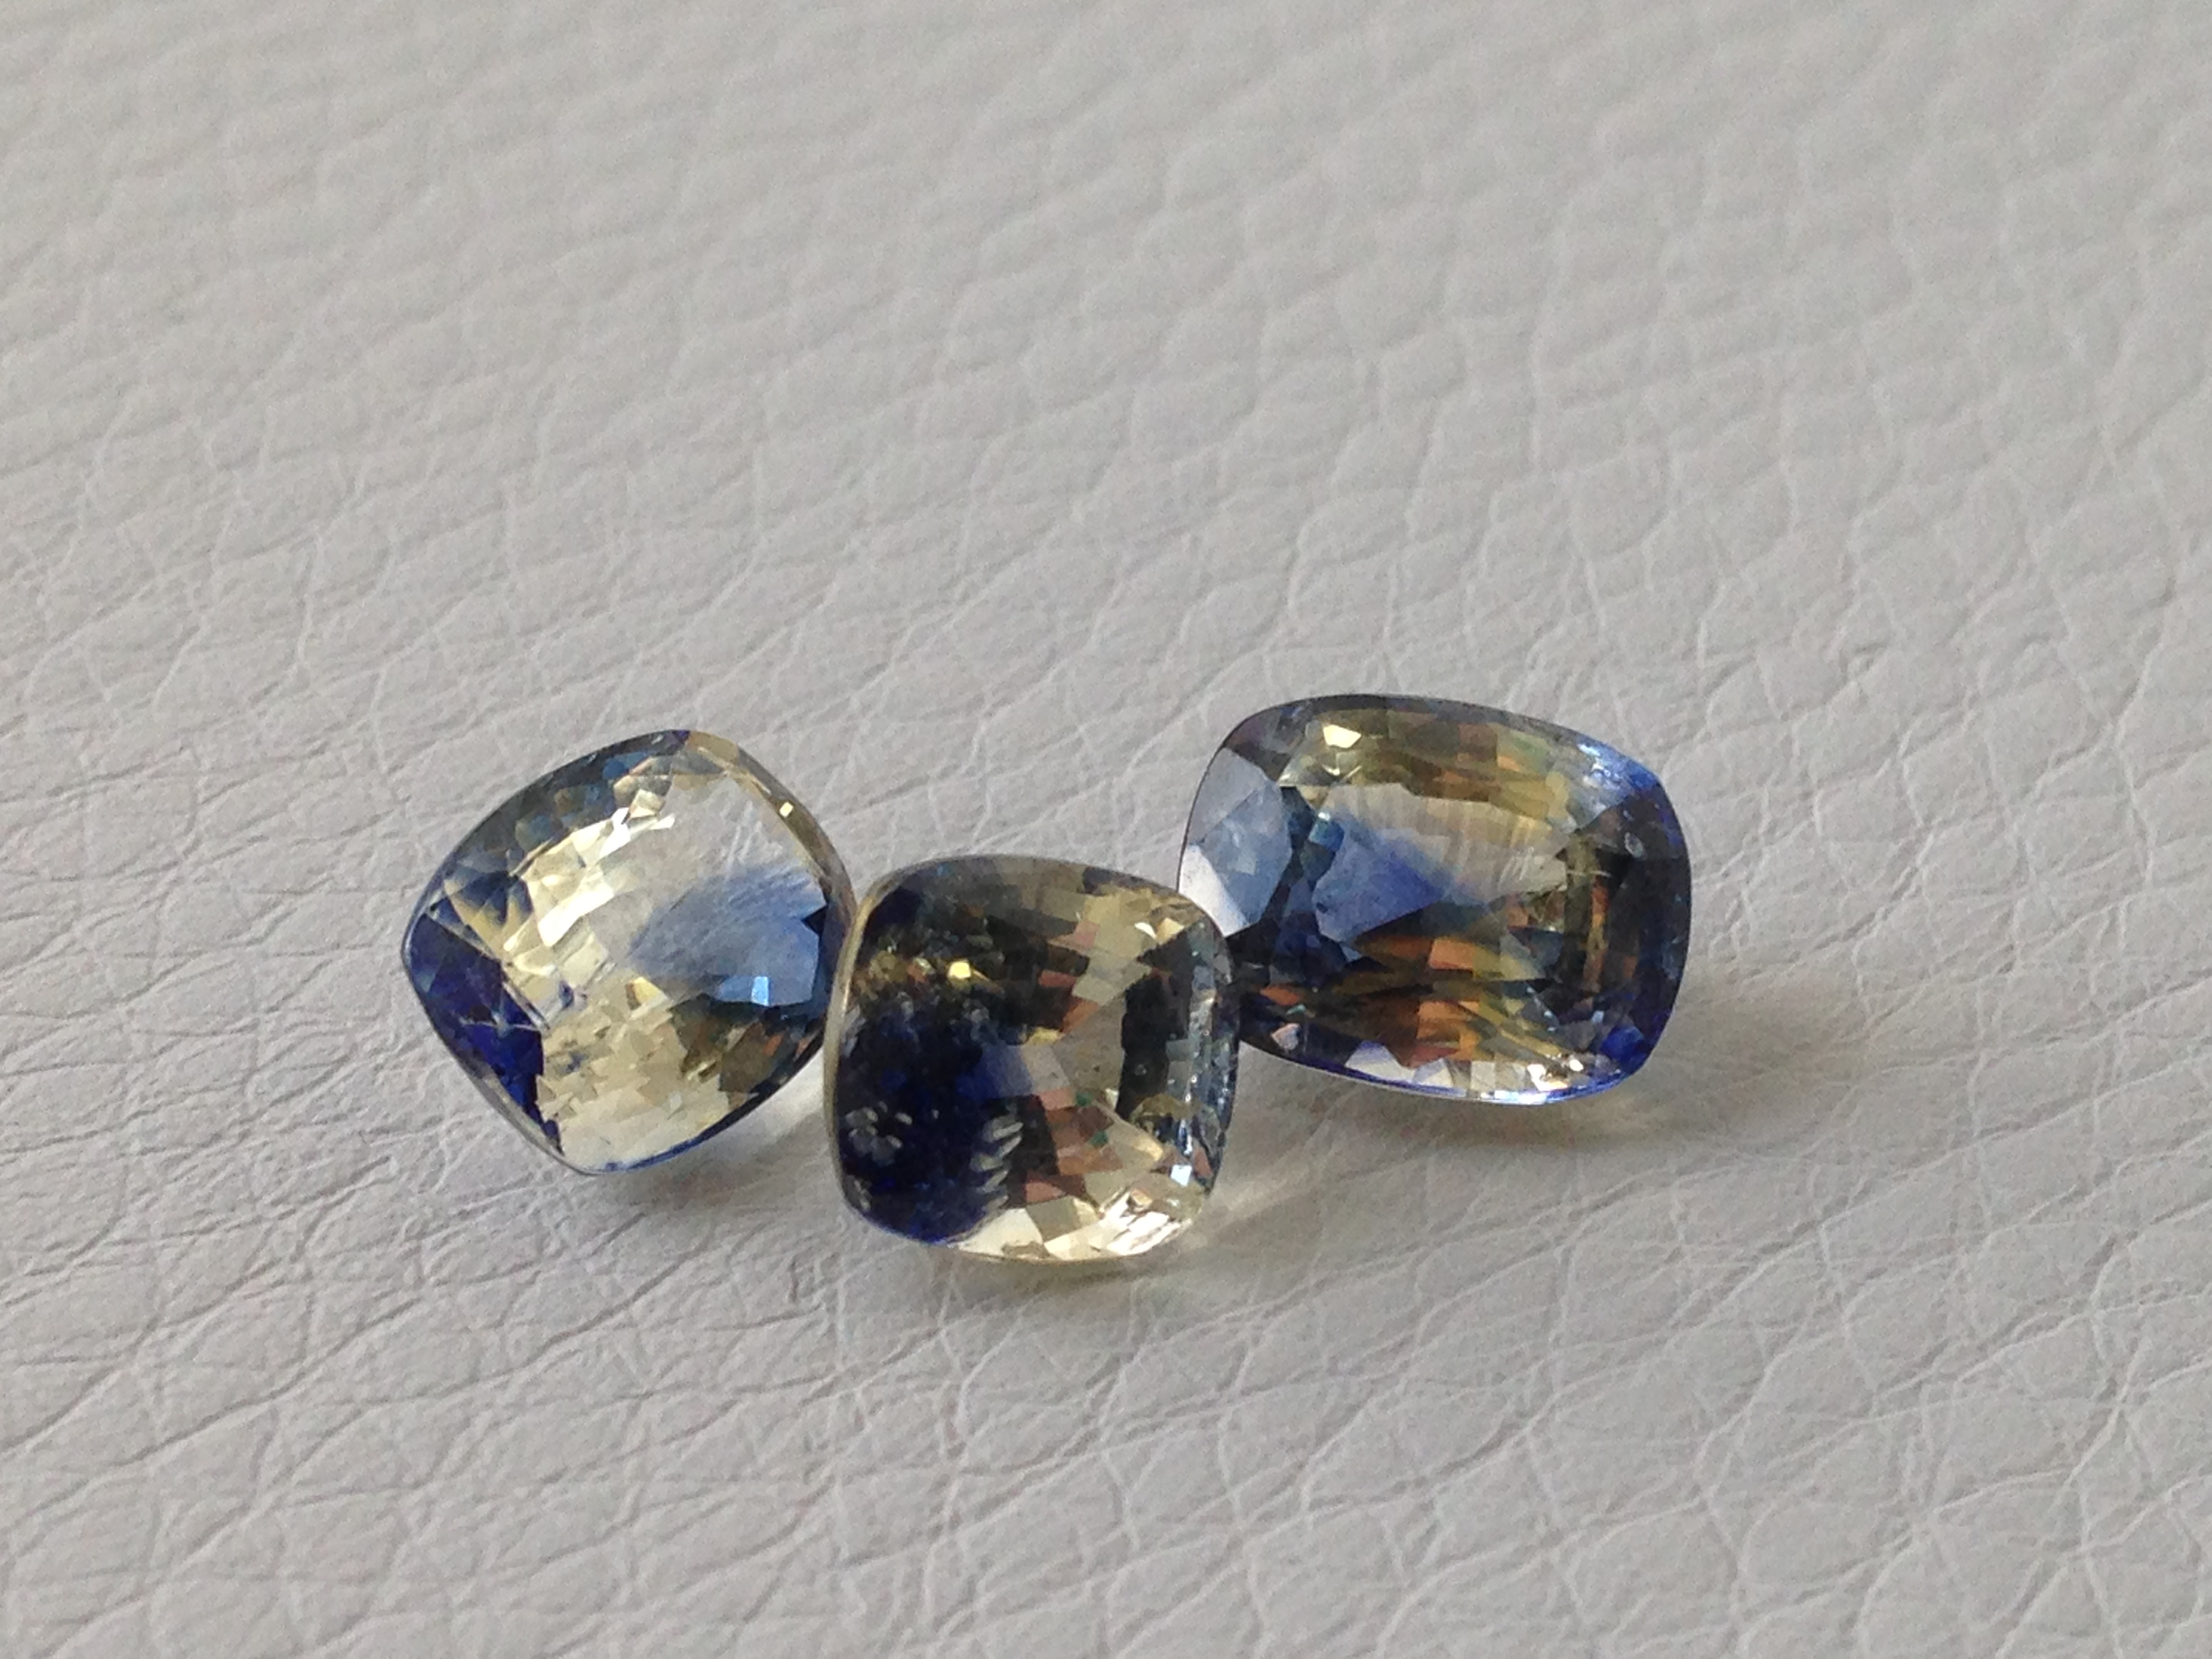 gemstone jupiter blue gold band inc color sku categories ring tags jewelry wide sapphire multi product white diamond